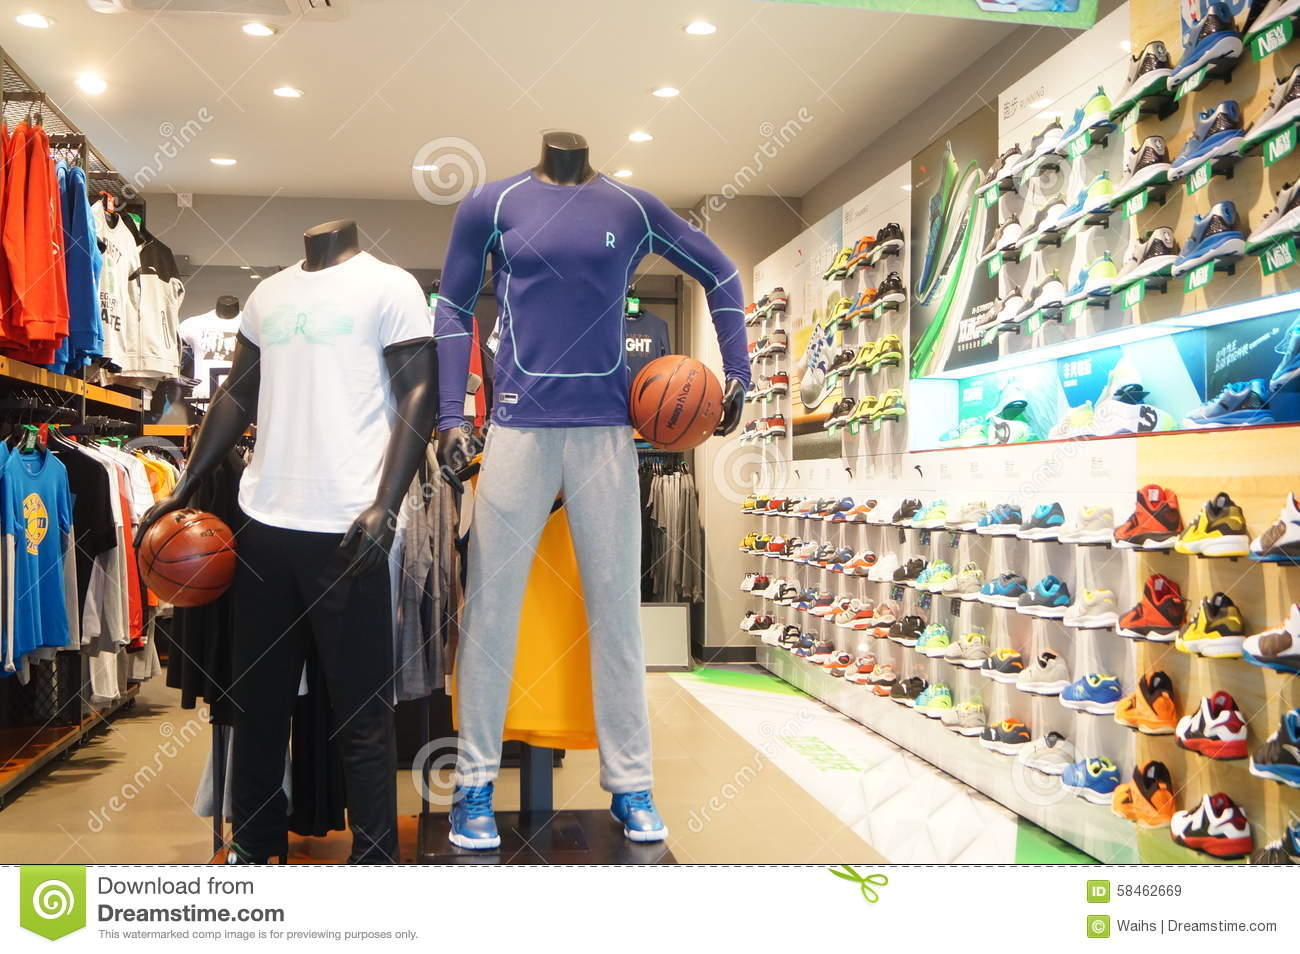 Sports clothes stores